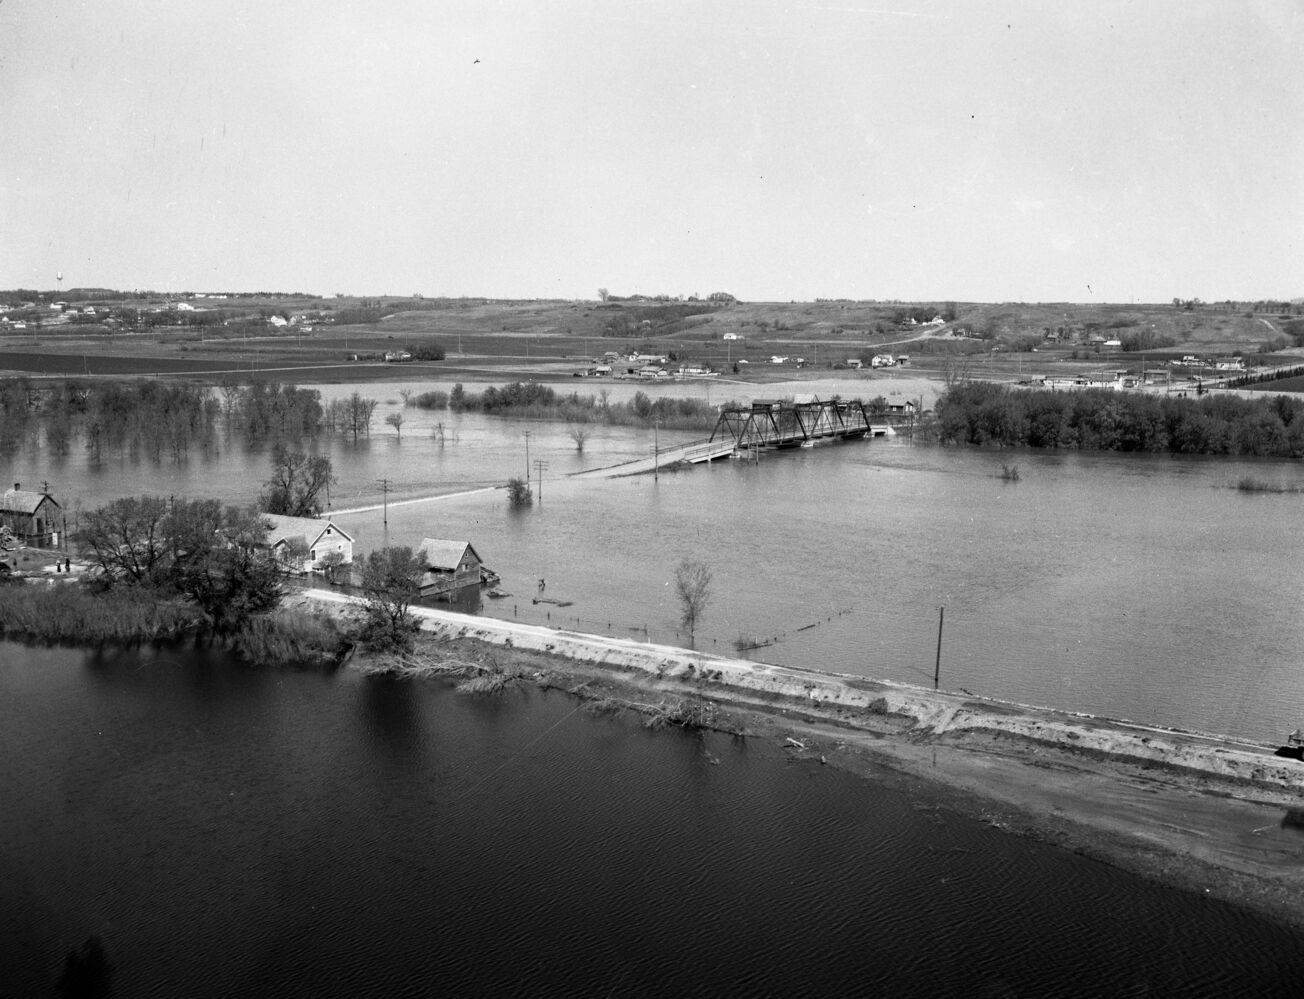 The 18th Street bridge is dry, but all accesses are flooded out during this look at the 1954 Assiniboine River flood. Although the road in the foreground, which looks to be John Avenue, it doesn't appear to have served as an effective dike. (Courtesy CKX fonds, S.J. McKee Archives, Brandon University)